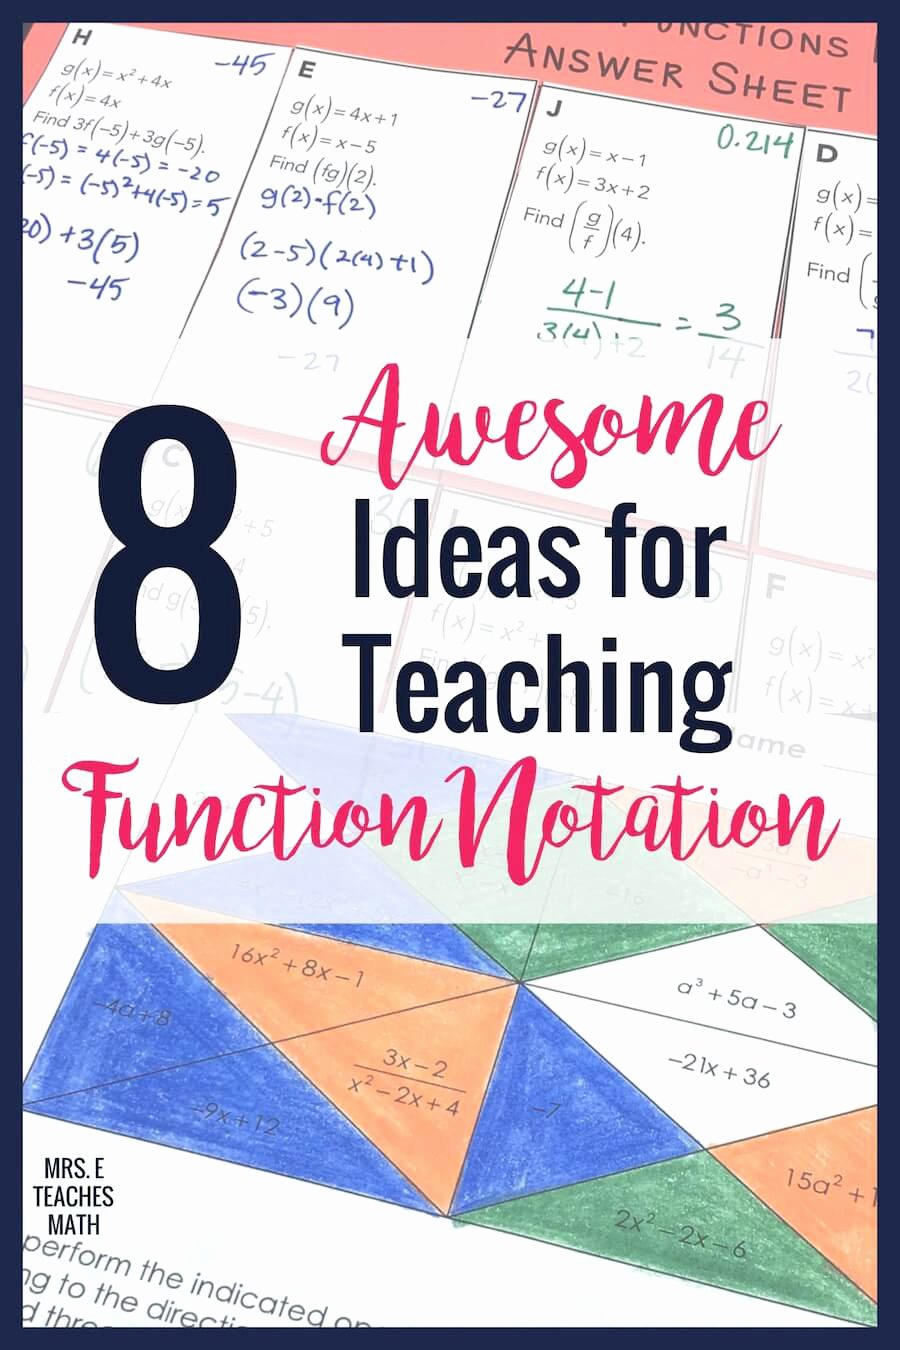 Function Operations and Composition Worksheet Ideas 8 Ideas for Teaching Function Notation